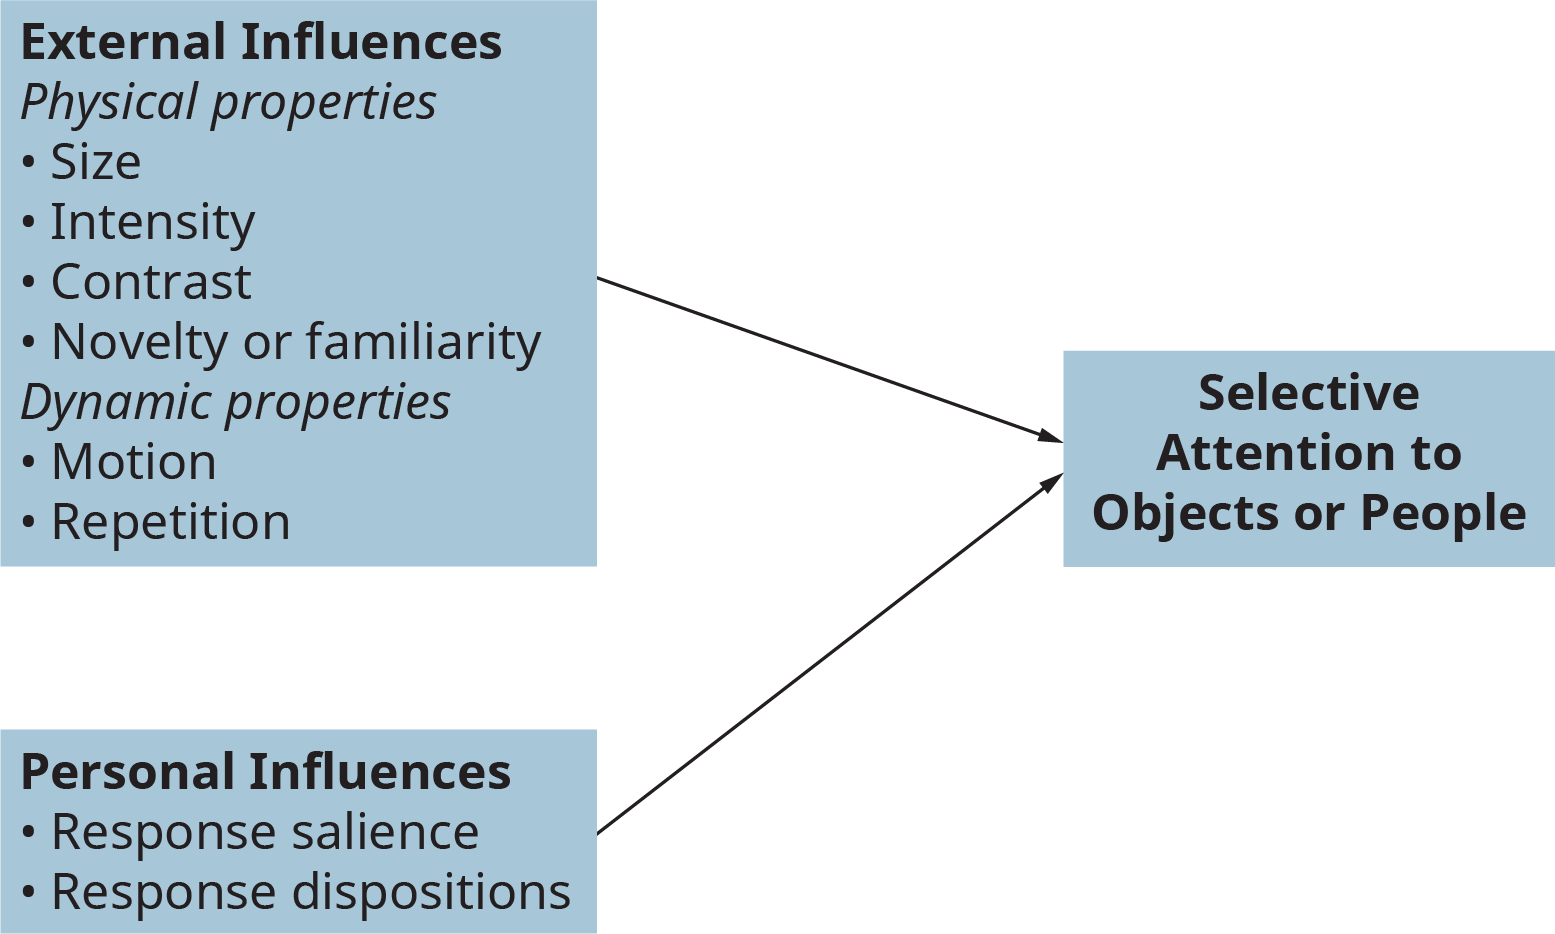 An illustration shows the major influences on selective attention.